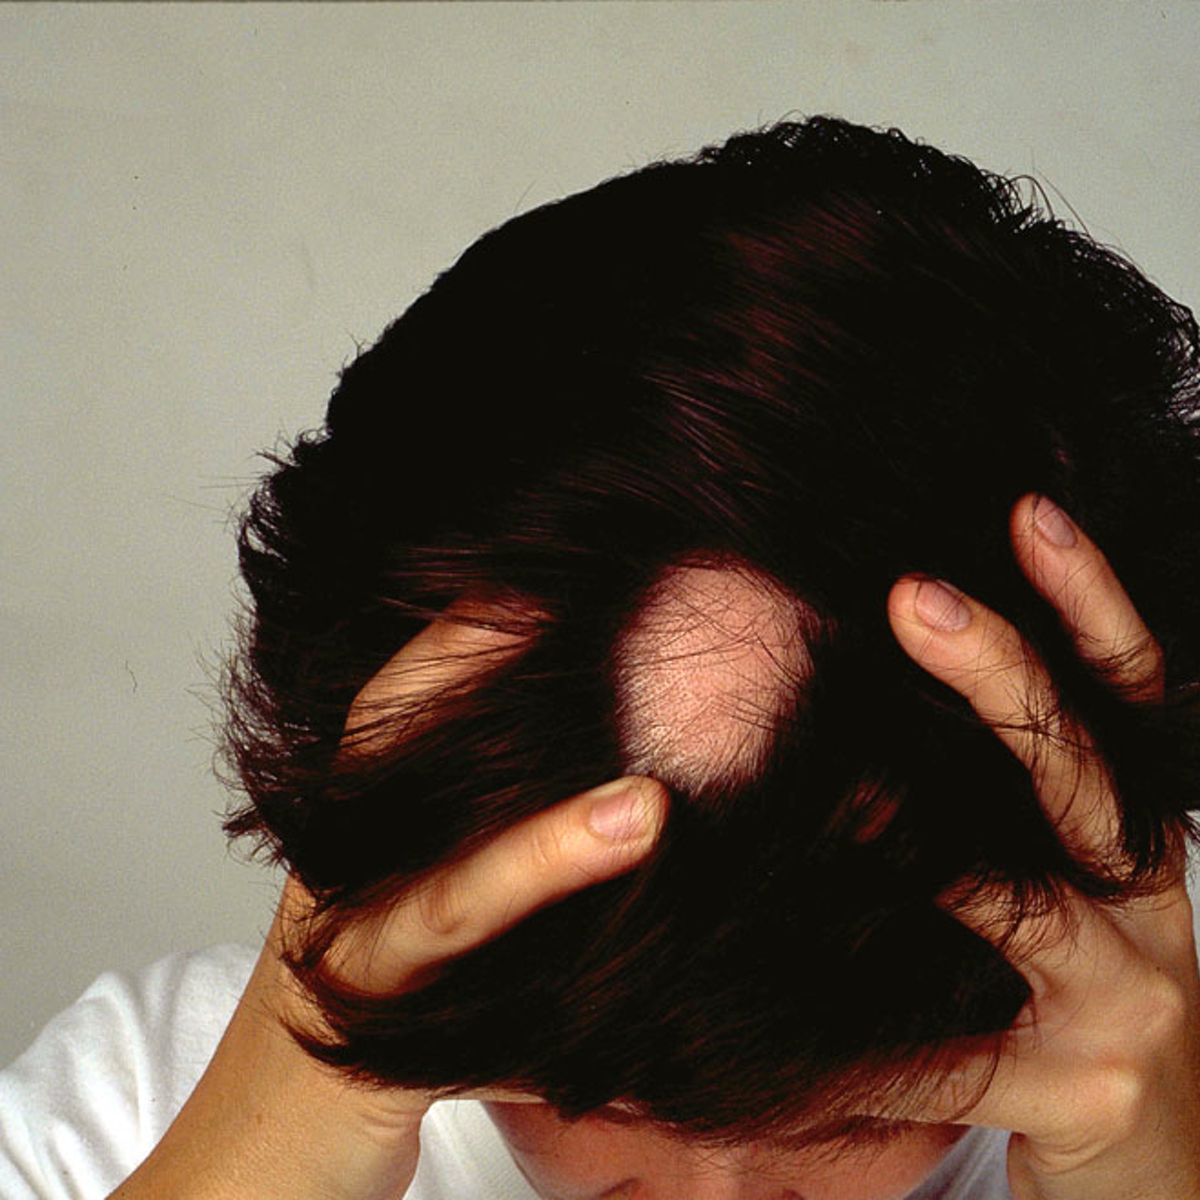 Explainer What Causes Alopecia Areata And Can You Treat This Type Of Hair Loss